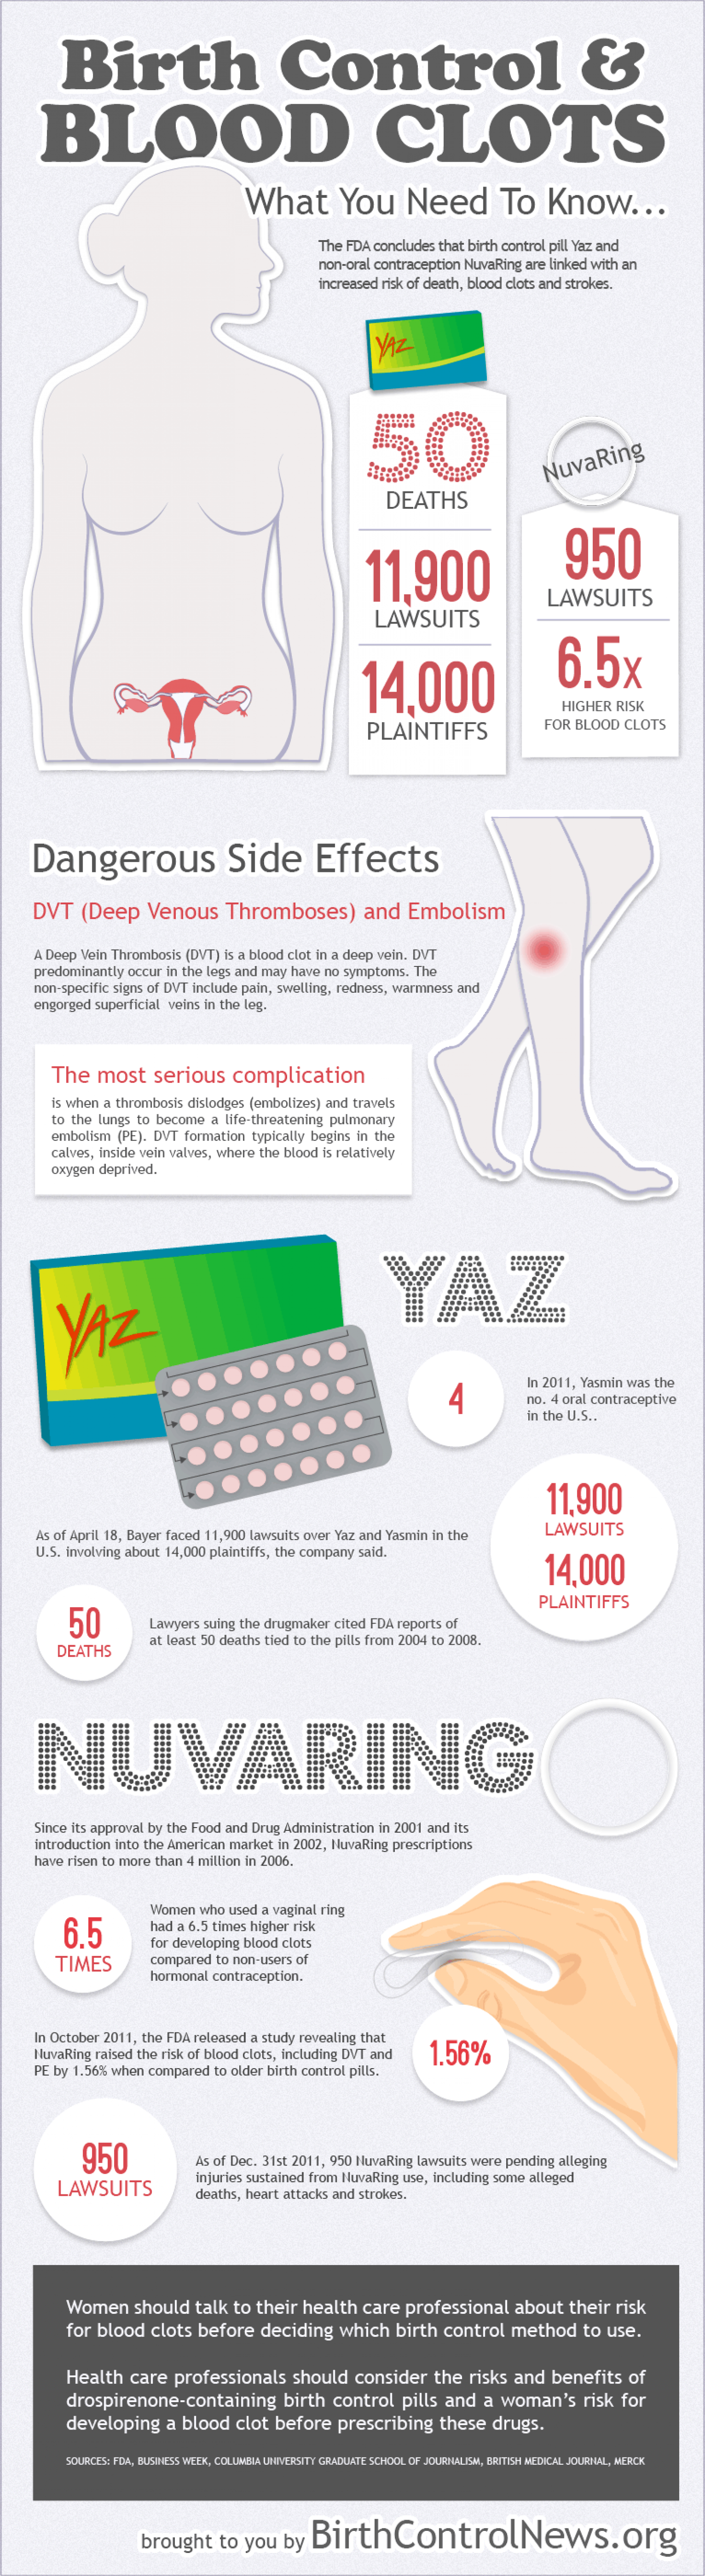 Birth Control & Blood Clots Infographic